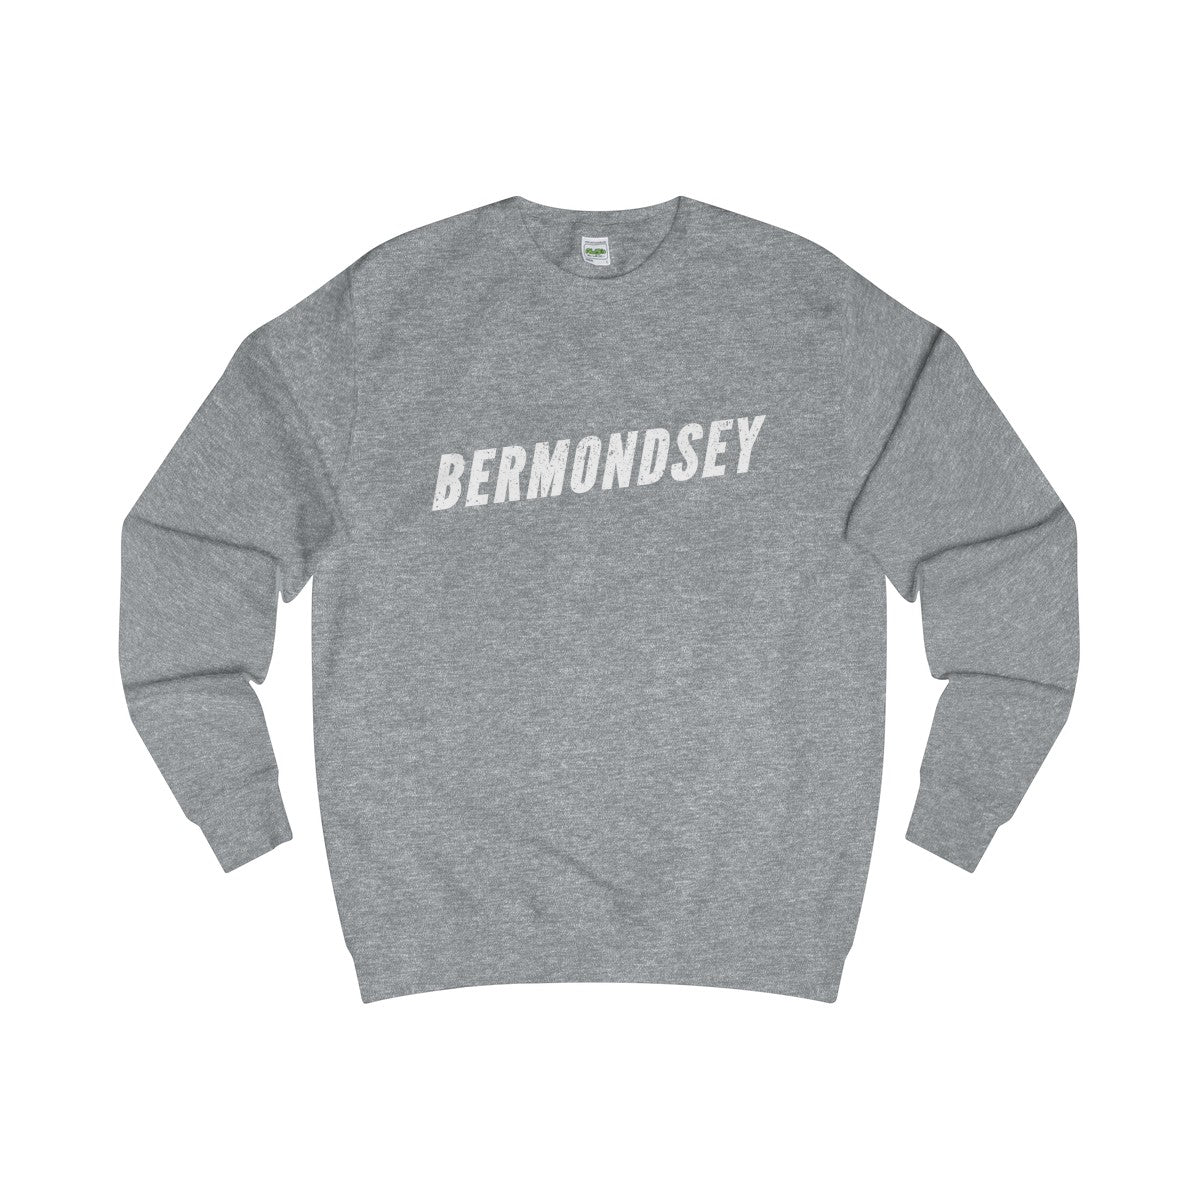 Bermondsey Sweater